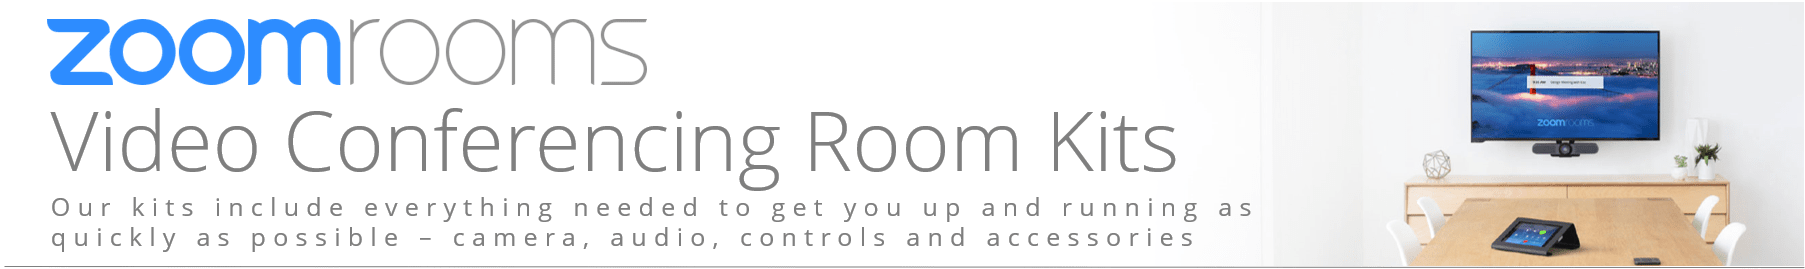 Zoom Rooms Kit feature Crestron and Logitech Rally